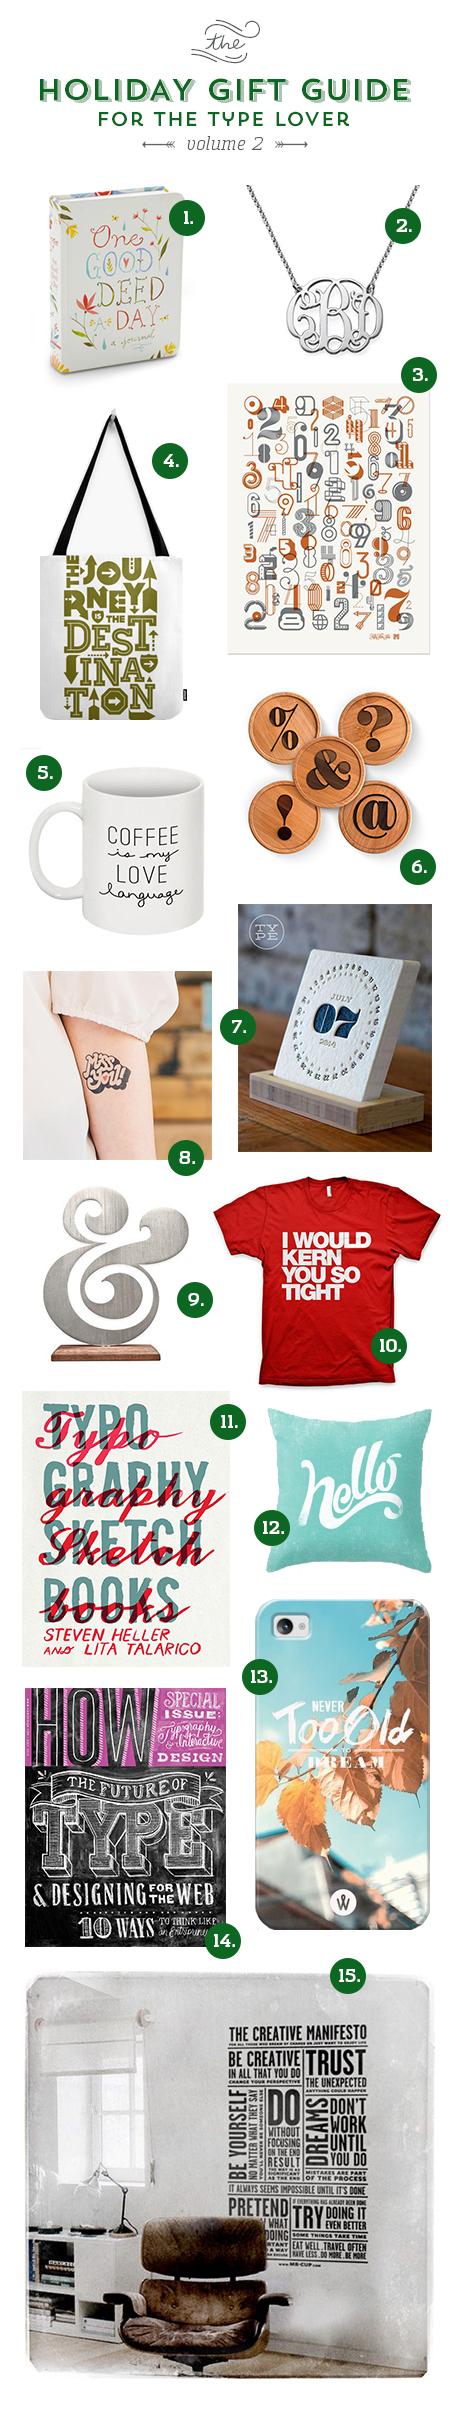 // Holiday Gift Guide For The Type Lover - Volume 2